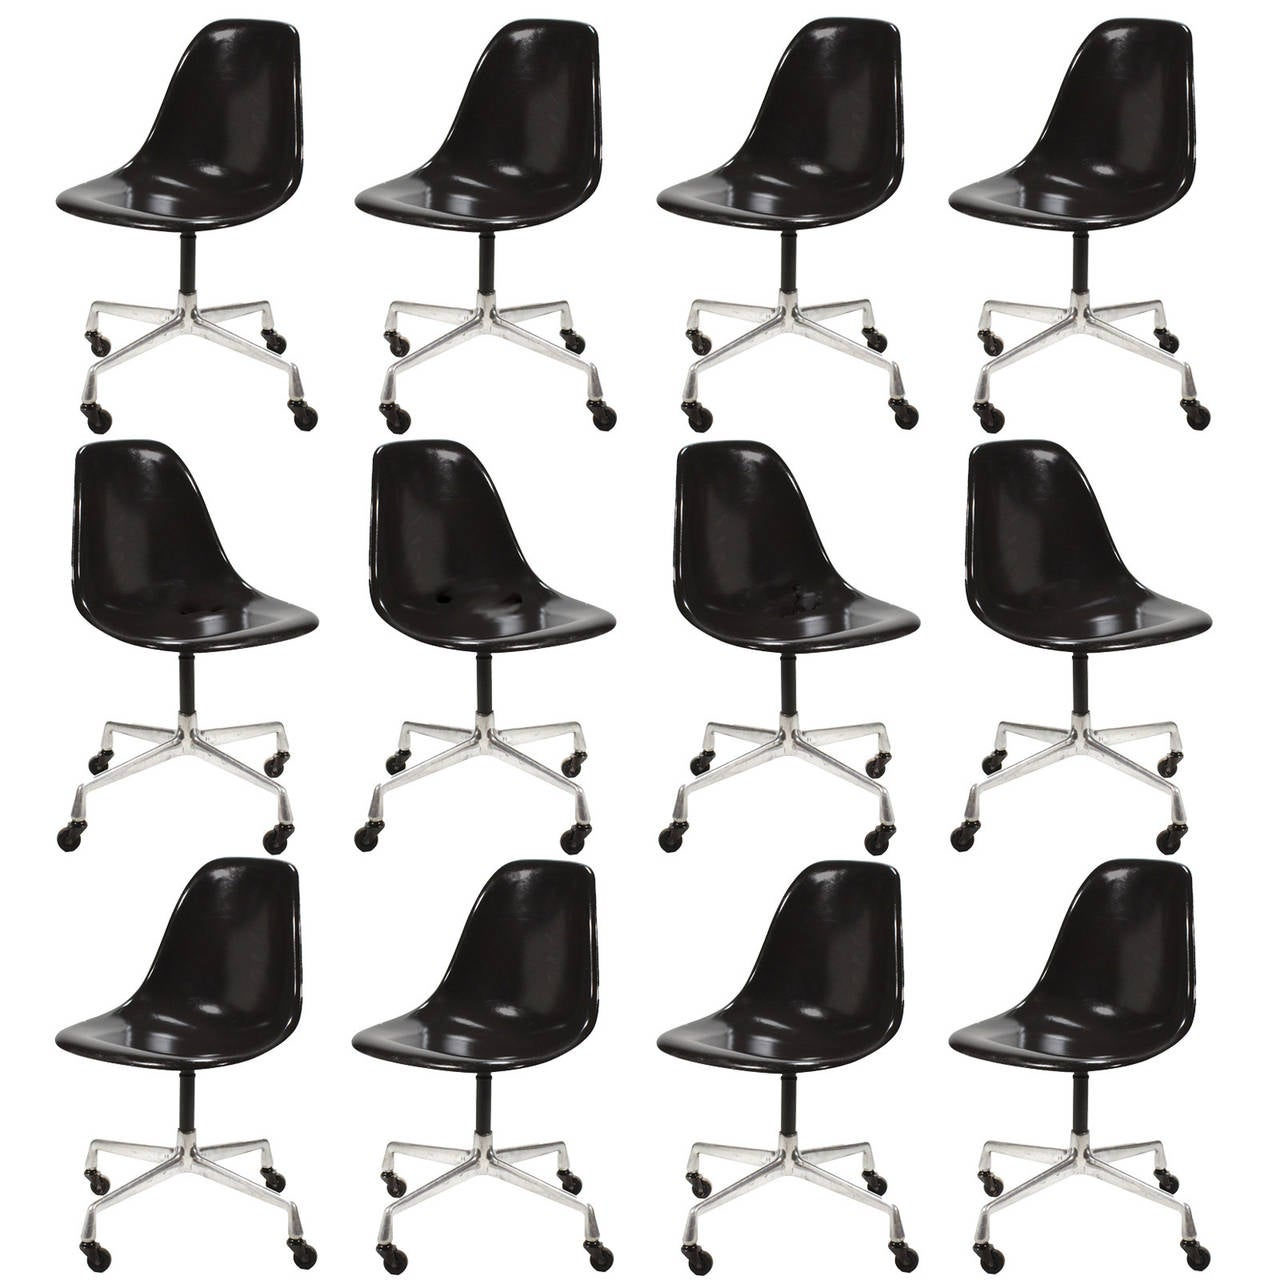 About A Chair 12 Side Chair.Eames Psc Fiberglass Side Chairs By Herman Miller Set Of 12 Or More